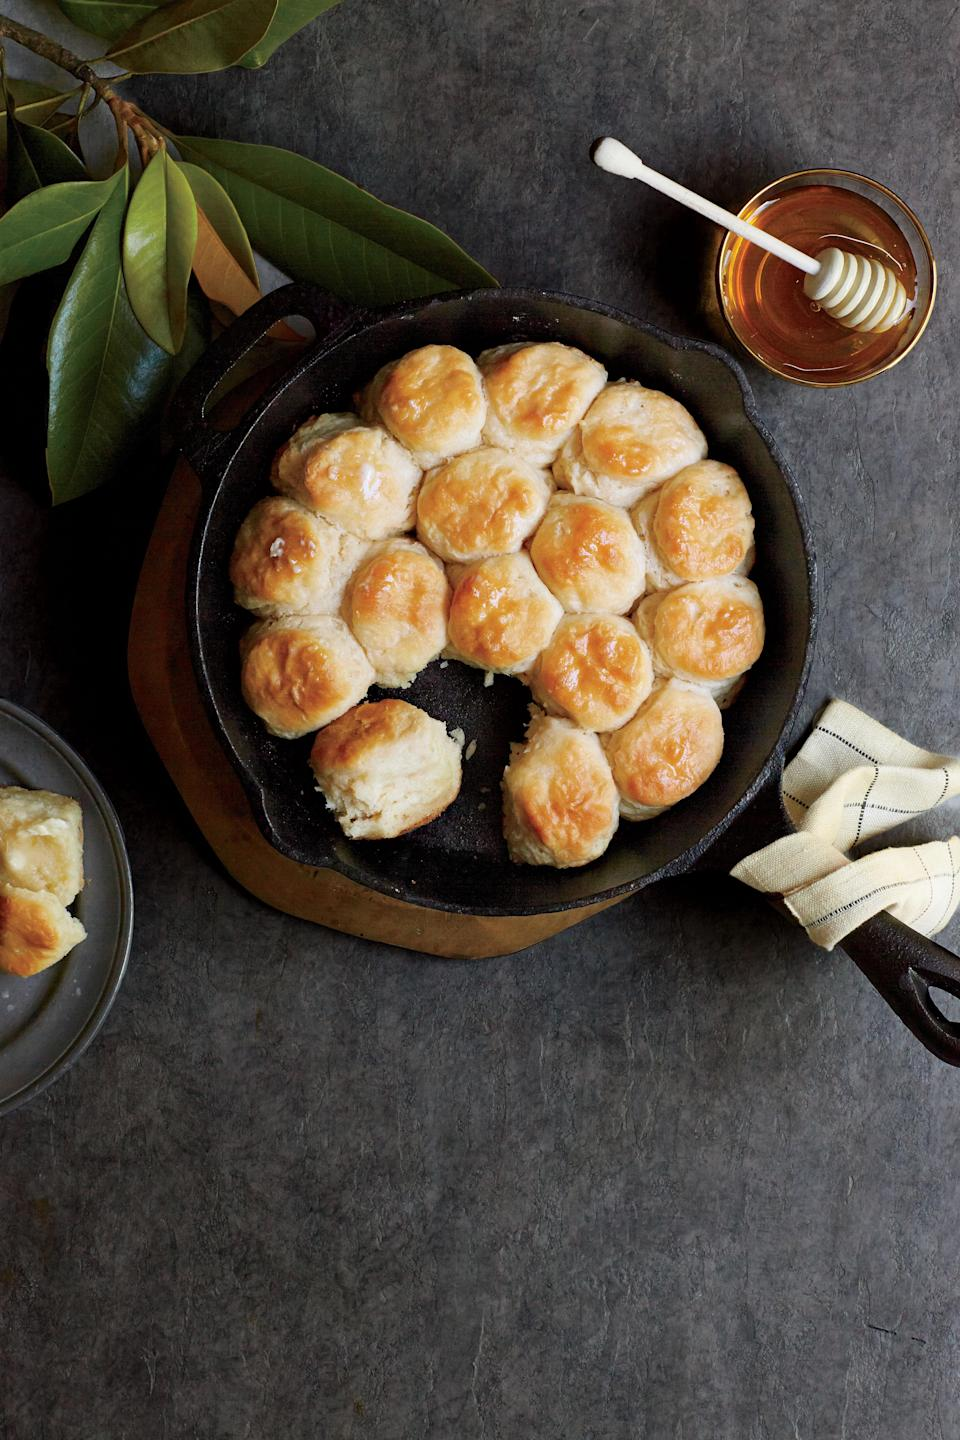 """<p><b>Recipe: <a href=""""http://www.myrecipes.com/recipe/angel-biscuits-50400000138555/"""" rel=""""nofollow noopener"""" target=""""_blank"""" data-ylk=""""slk:Angel Biscuits"""" class=""""link rapid-noclick-resp"""">Angel Biscuits</a></b></p> <p>Nestle these yeast biscuits snug together in the pan and they'll rise even higher when baked. You don't have to use all the dough at once—refrigerate in an airtight container up to 5 days.</p>"""